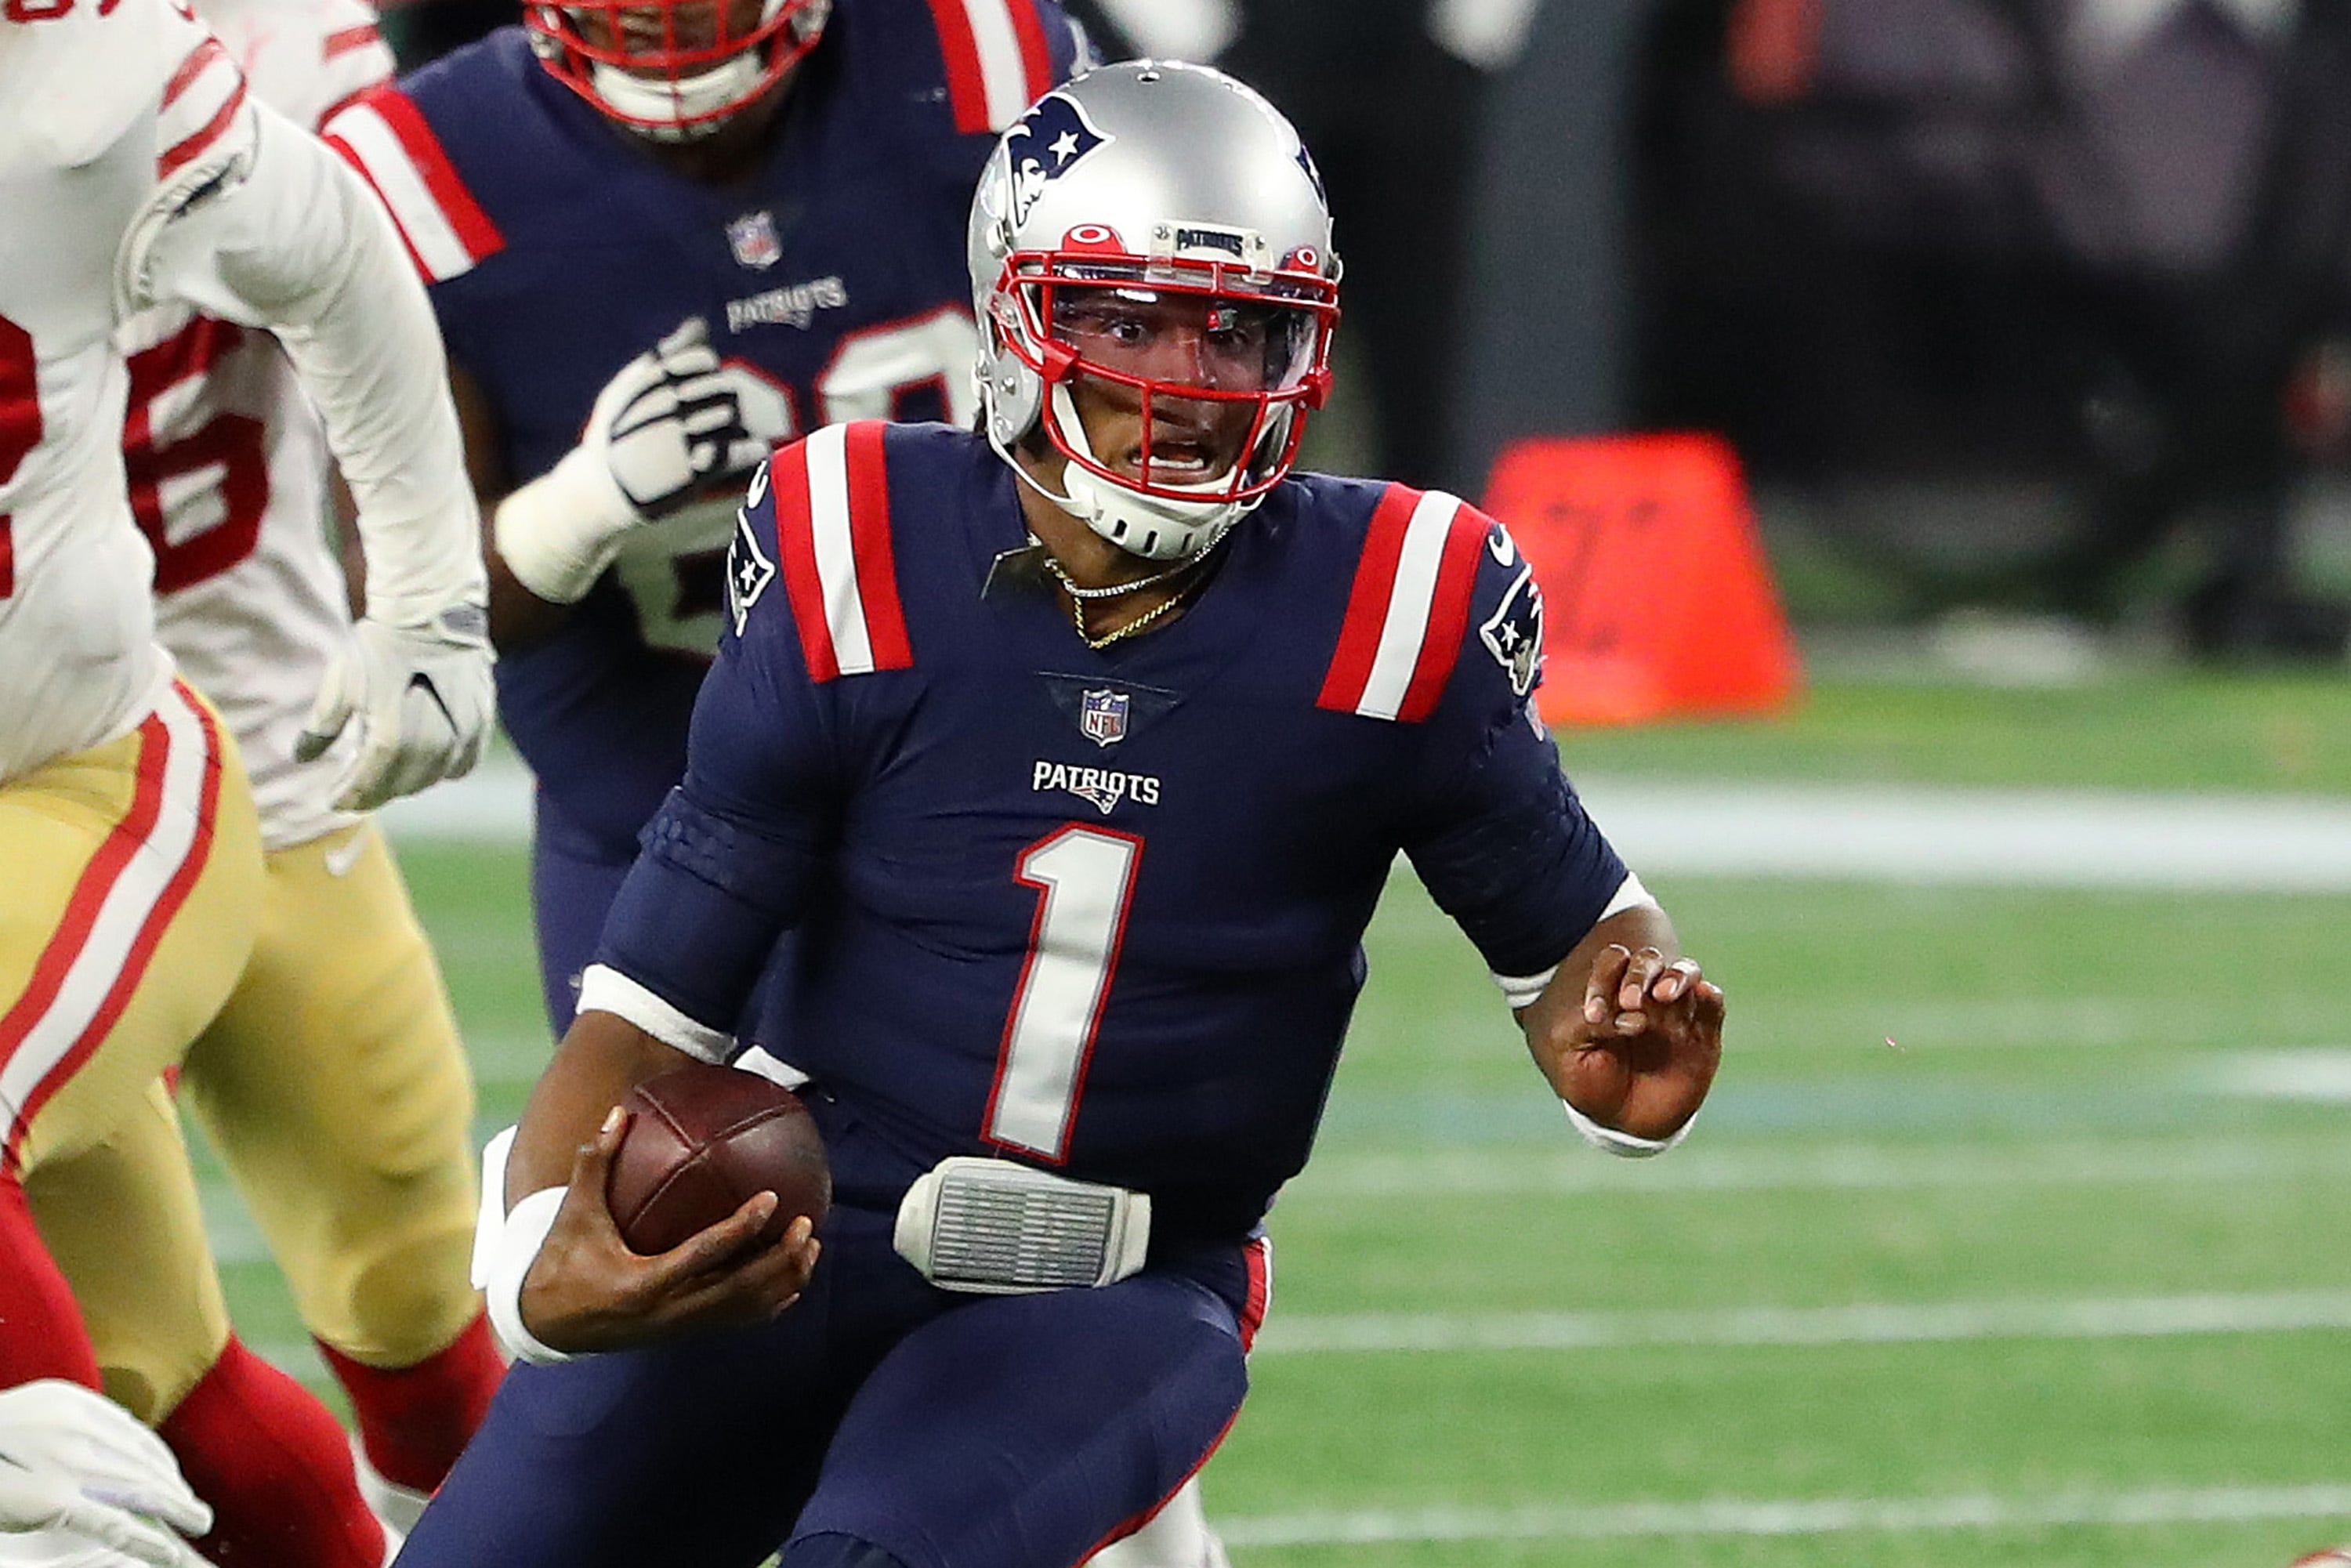 Patriots QB Cam Newton calls recent play 'trash,' takes ownership of struggles